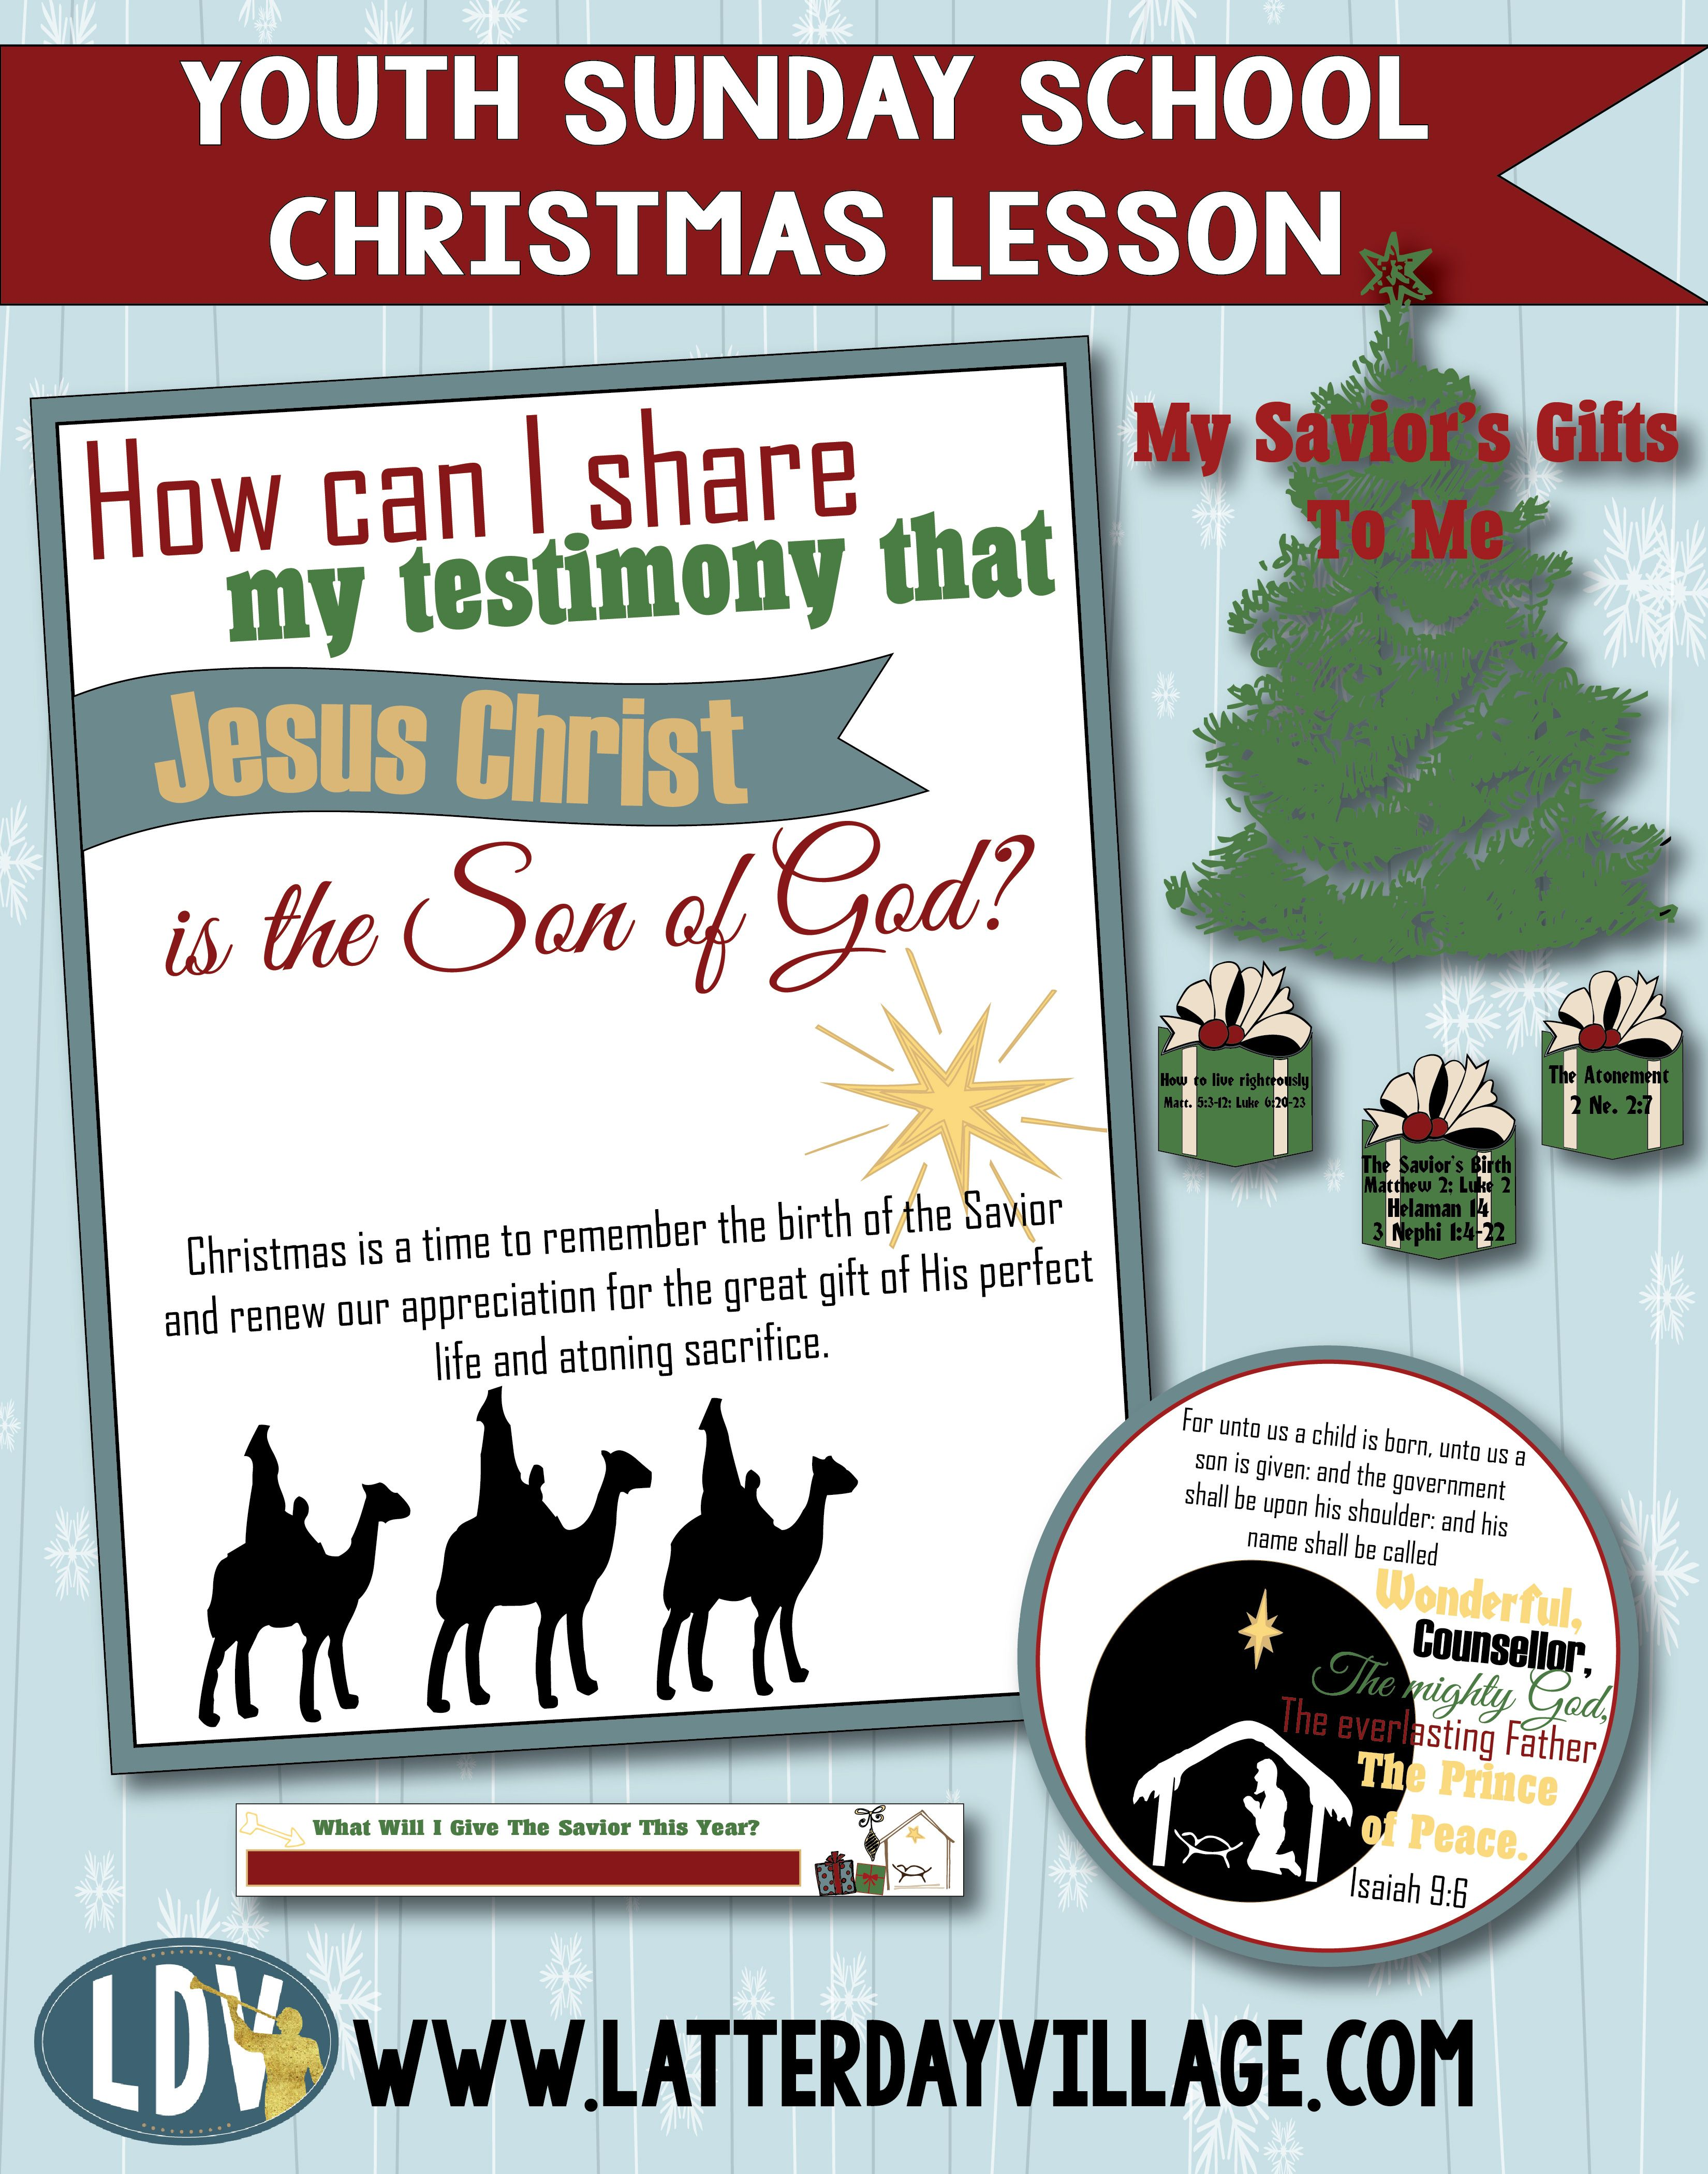 The Ultimate Resource For Youth Sunday School Teachers